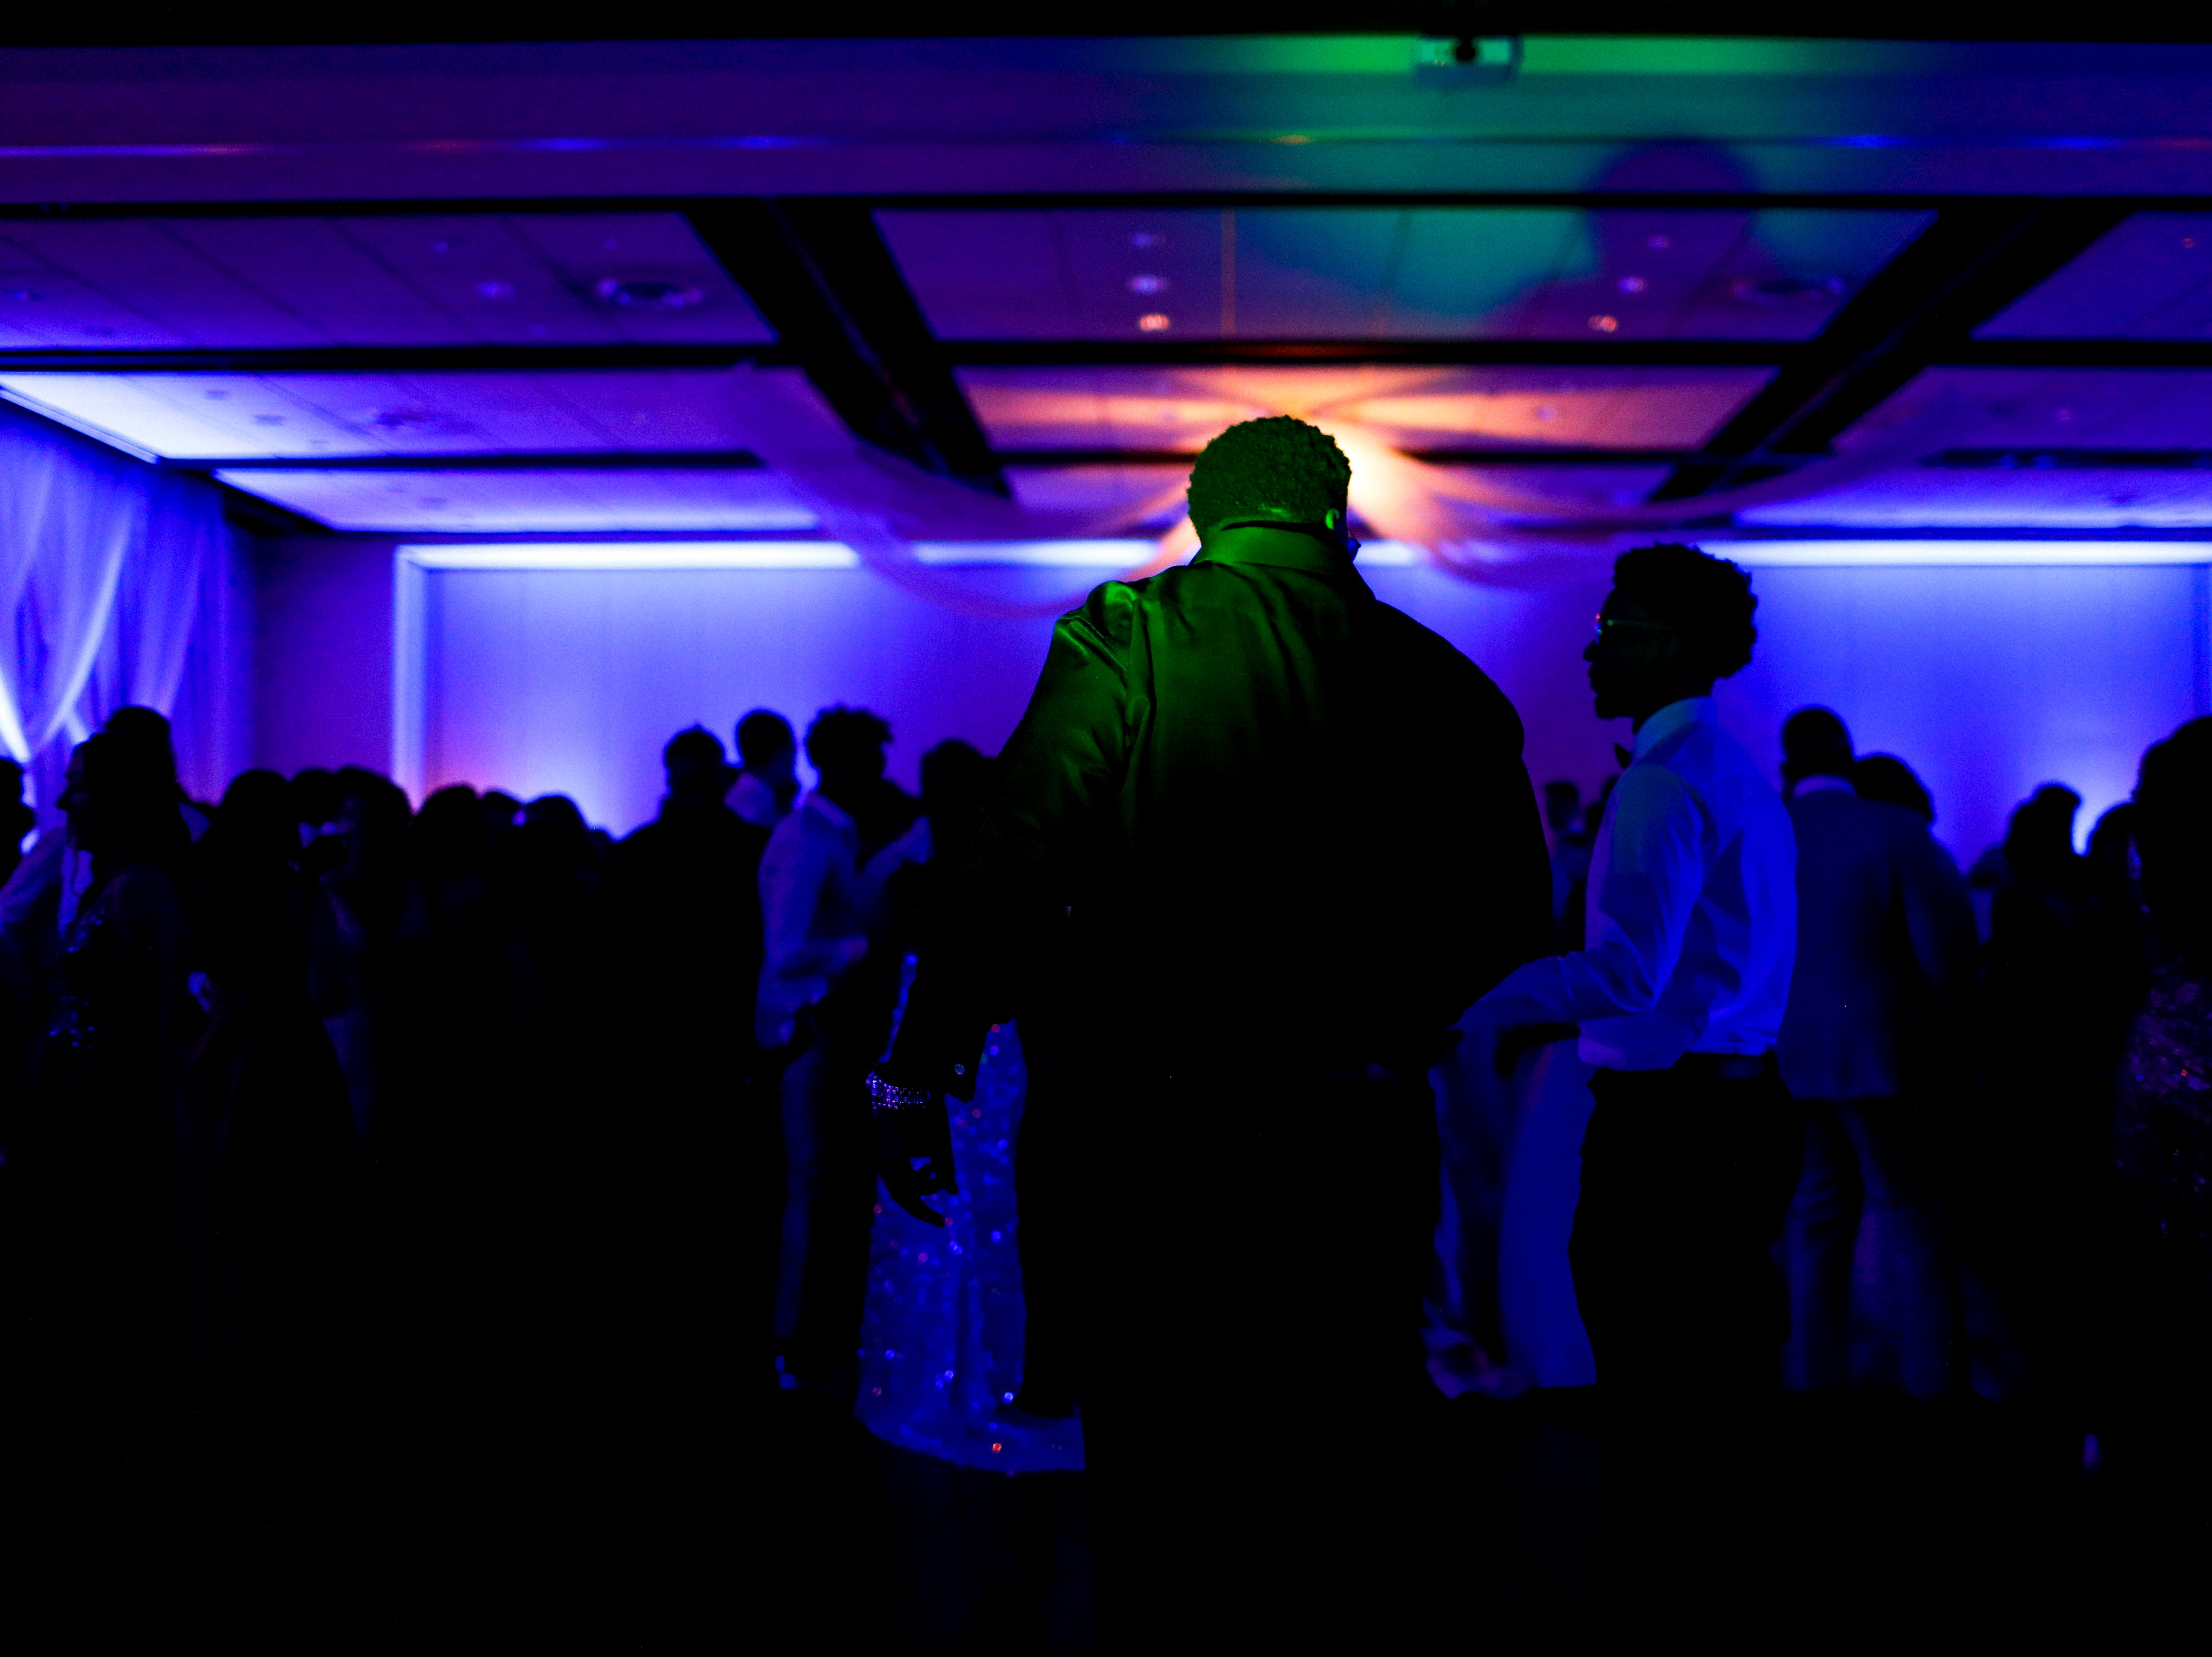 Students enter the dance floor during Clarksville Academy's 2019 prom at The Bruce Convention Center in Hopkinsville, Ky., on Saturday, April 6, 2019.